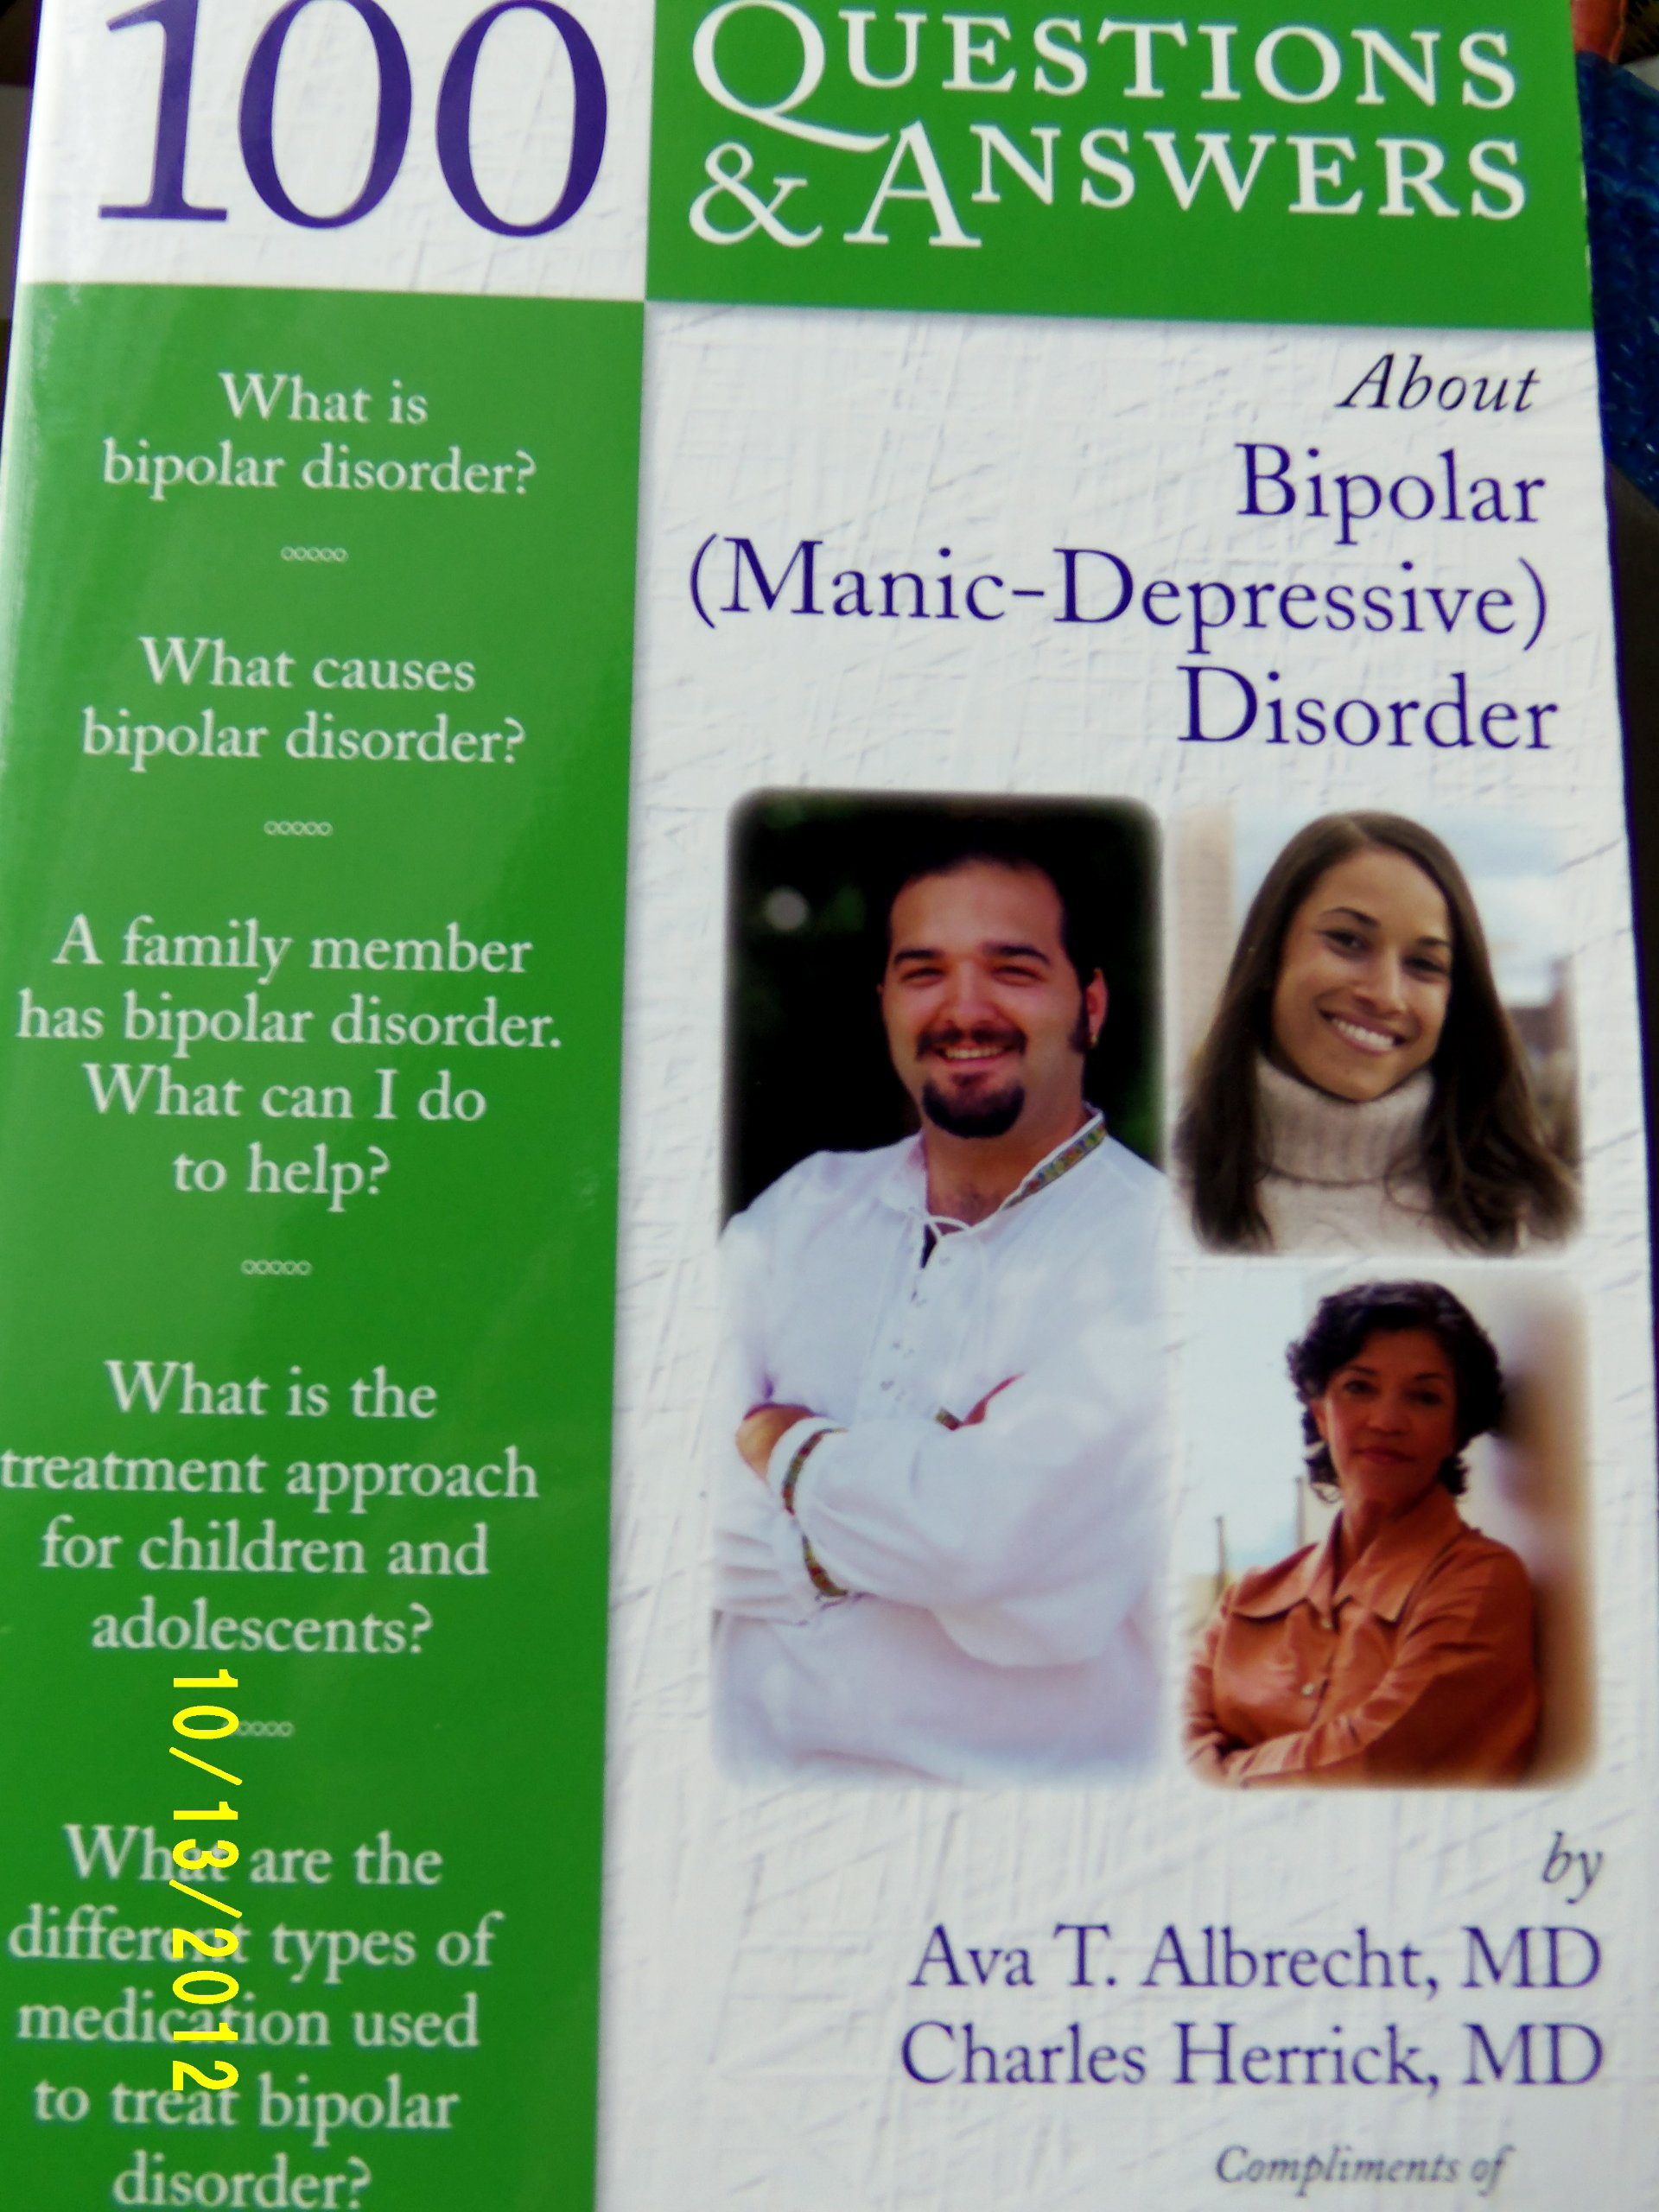 100 Questions and Answers about Bi-Polar (Manic-Depressive) Disorder: MD  Ava T Albrecht MD Charles Herrick: 9780763750565: Amazon.com: Books